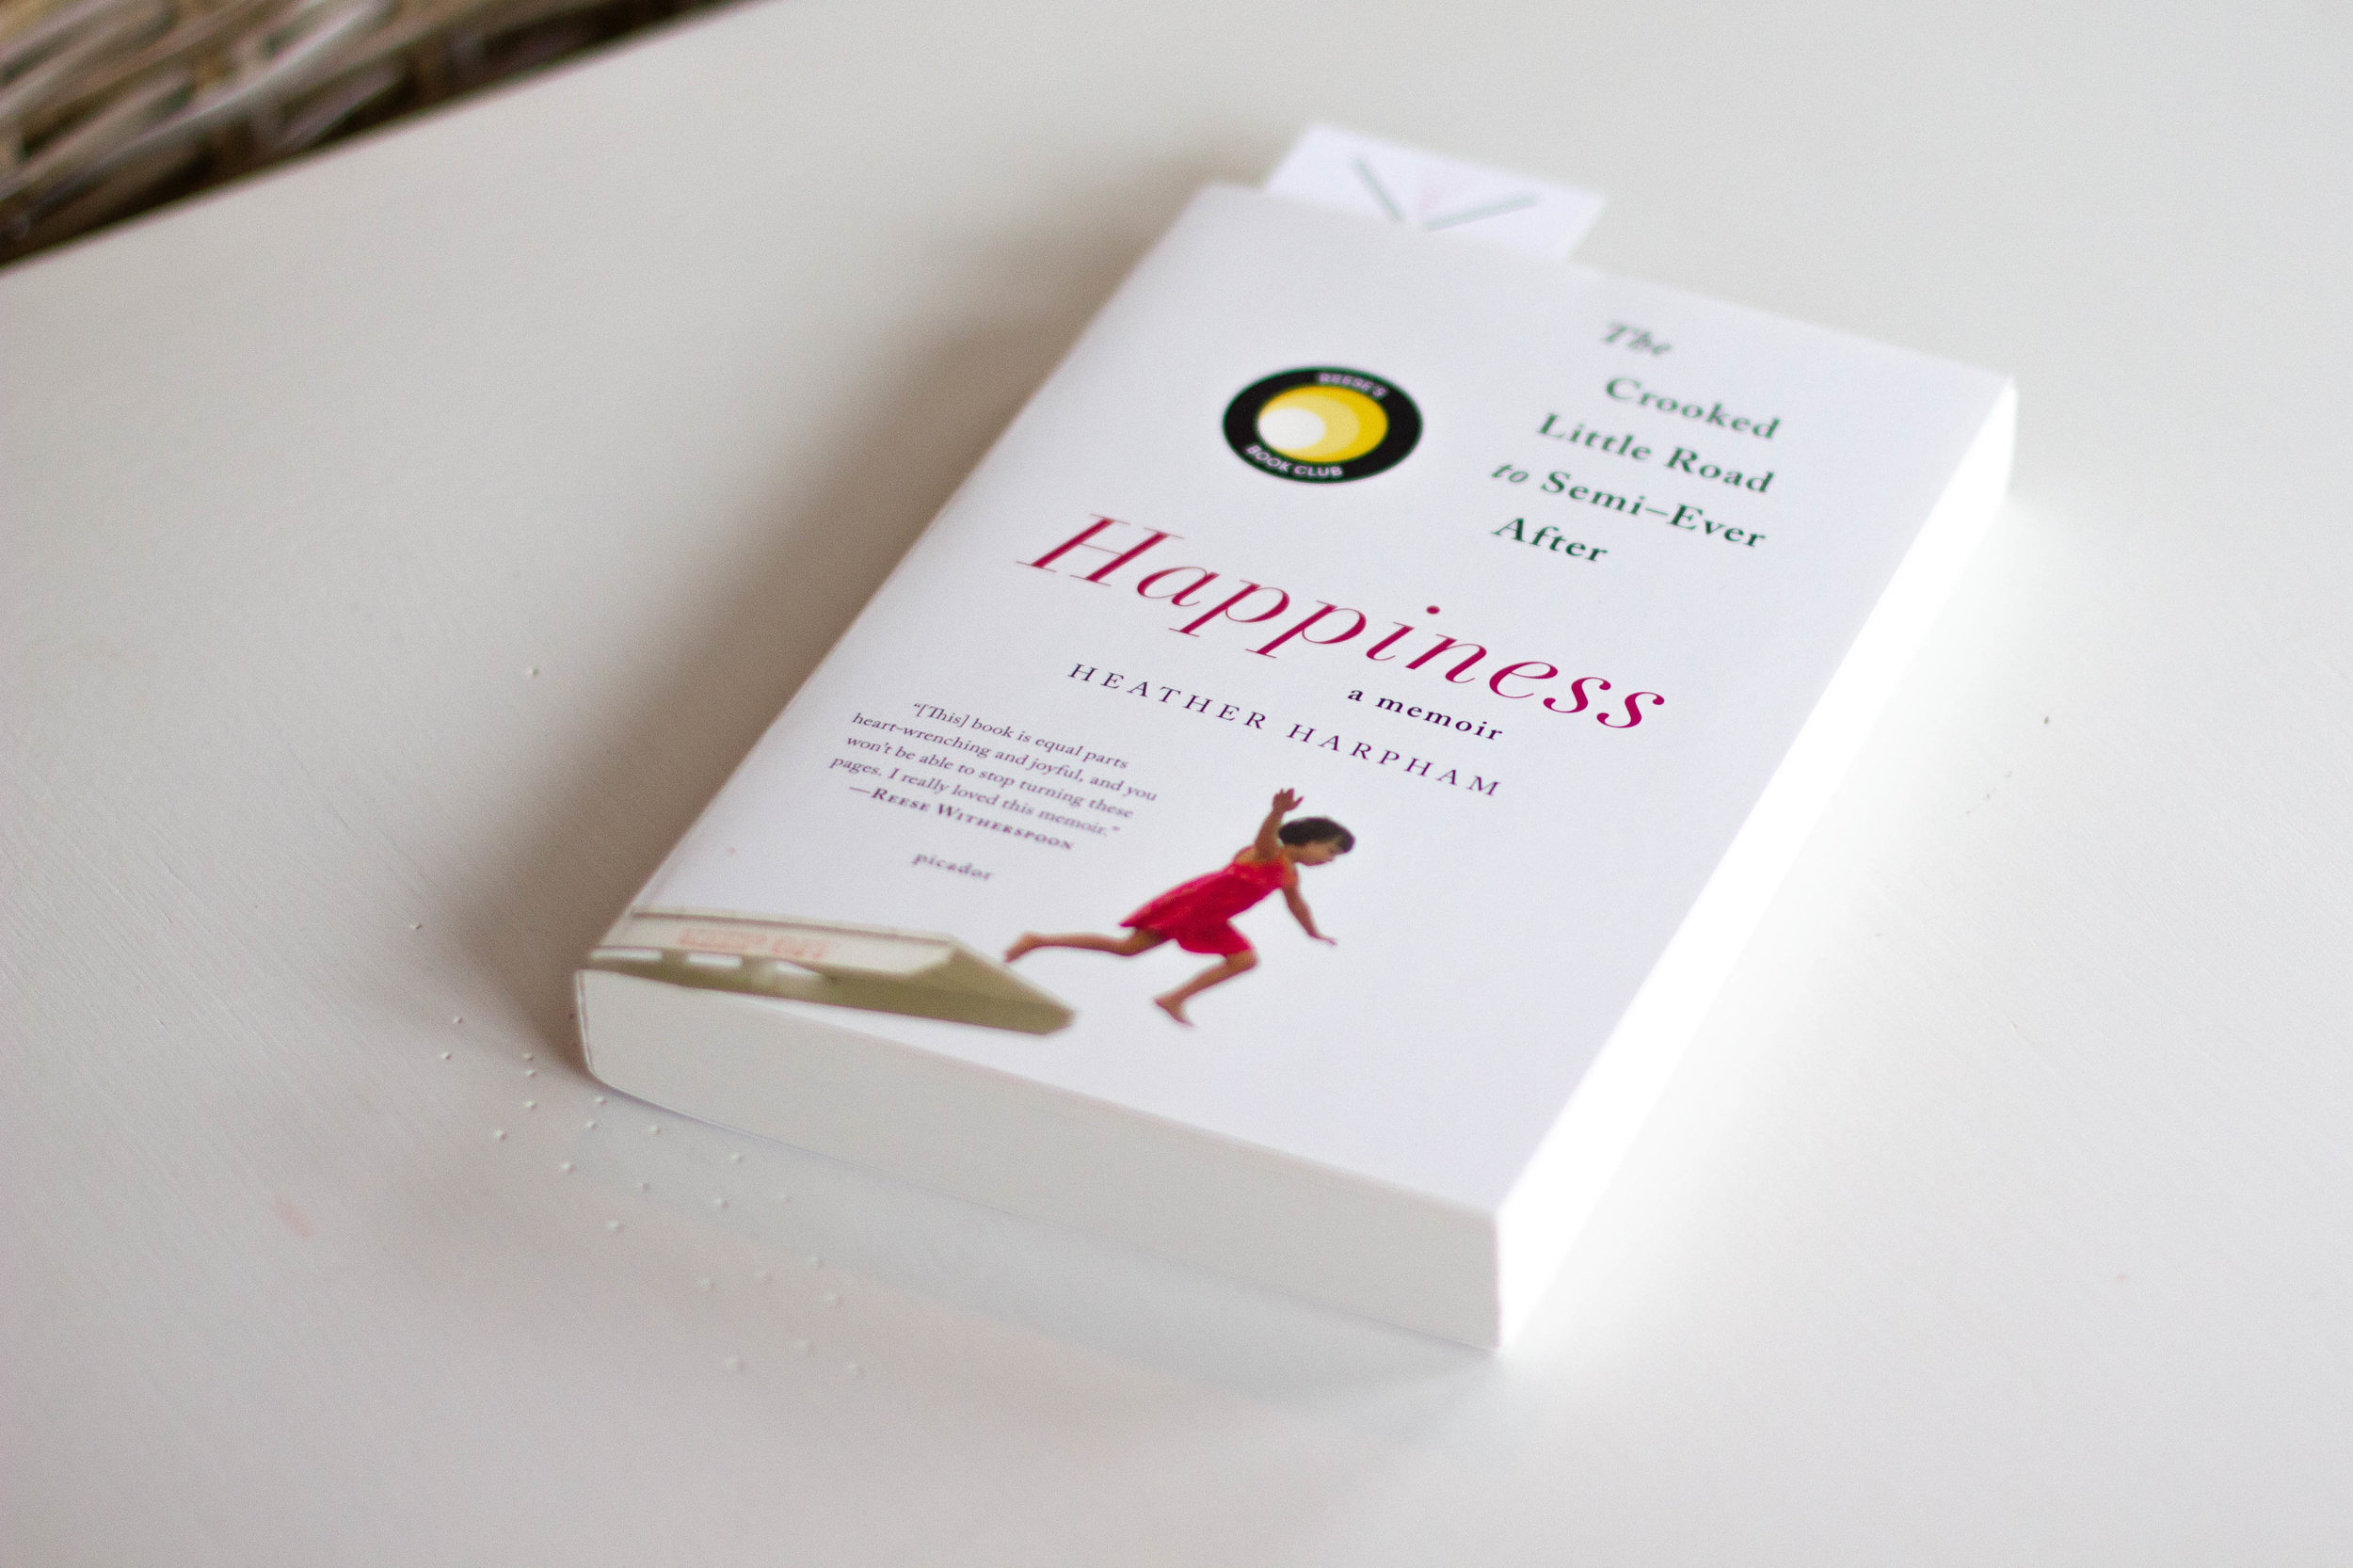 Book Feature - Happiness: The Crooked Little Road to Semi-Ever After